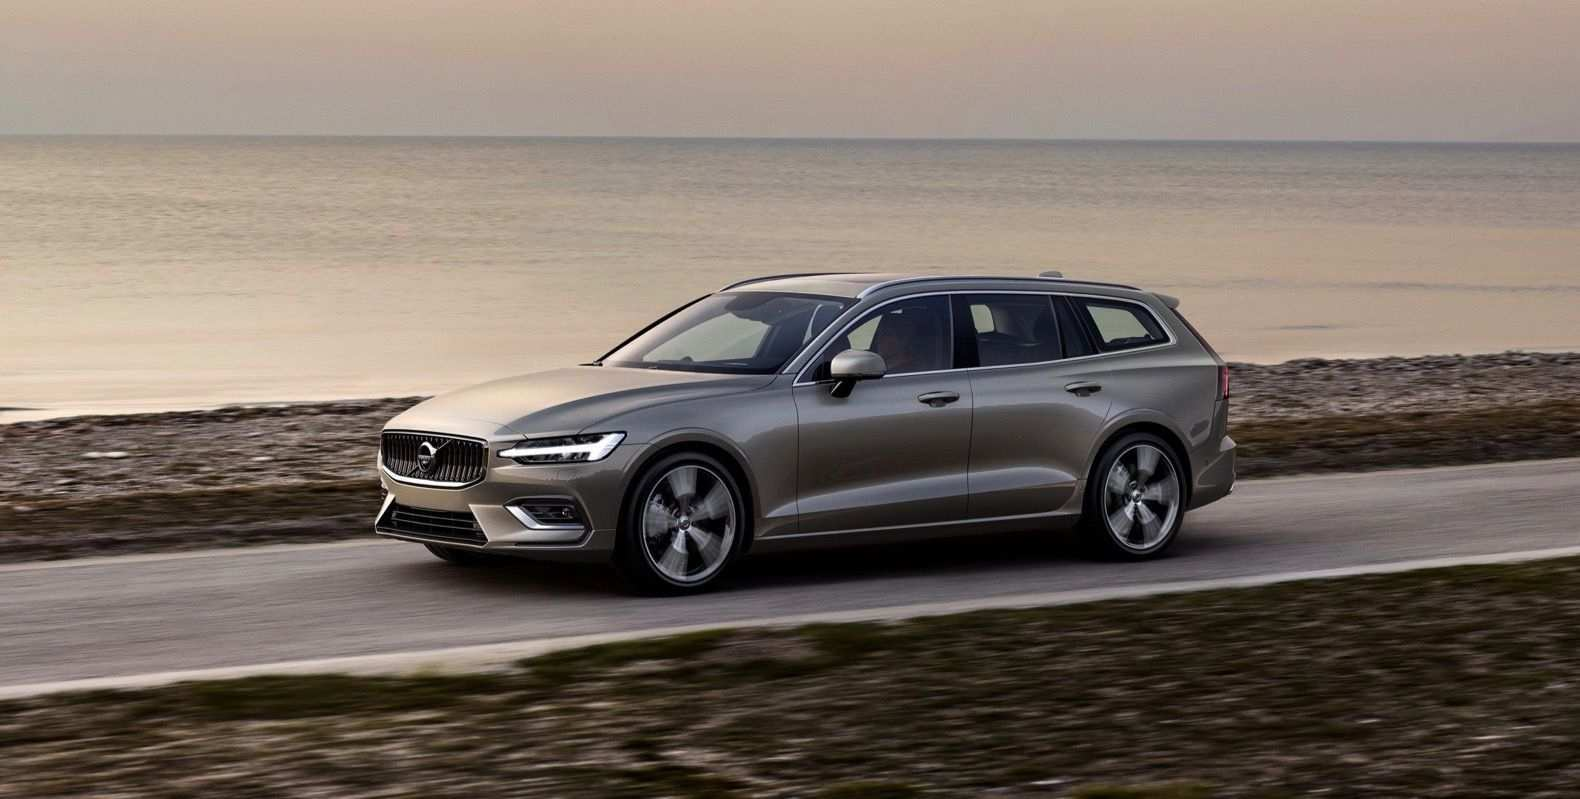 46 All New Best Volvo Plug In 2019 Redesign Price And Review Spy Shoot with Best Volvo Plug In 2019 Redesign Price And Review